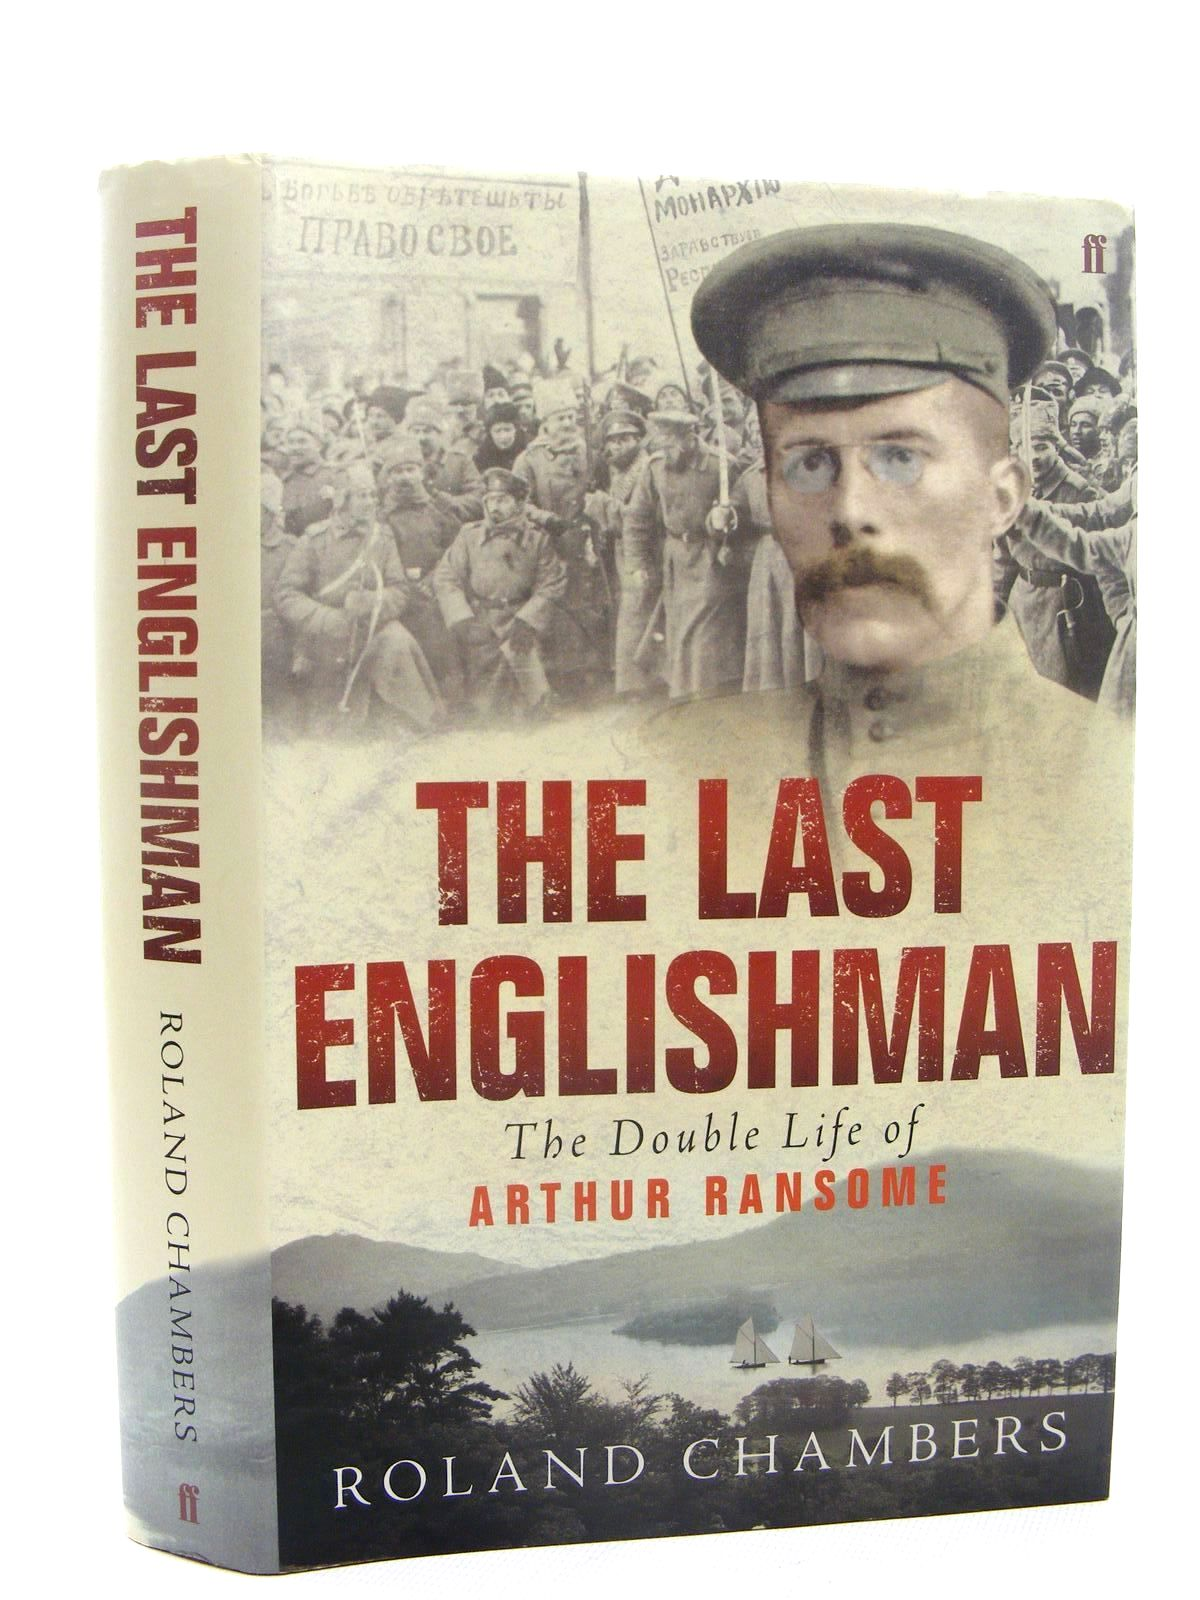 Photo of THE LAST ENGLISHMAN - THE DOUBLE LIFE OF ARTHUR RANSOME written by Ransome, Arthur<br />Chambers, Roland published by Faber & Faber (STOCK CODE: 2124825)  for sale by Stella & Rose's Books